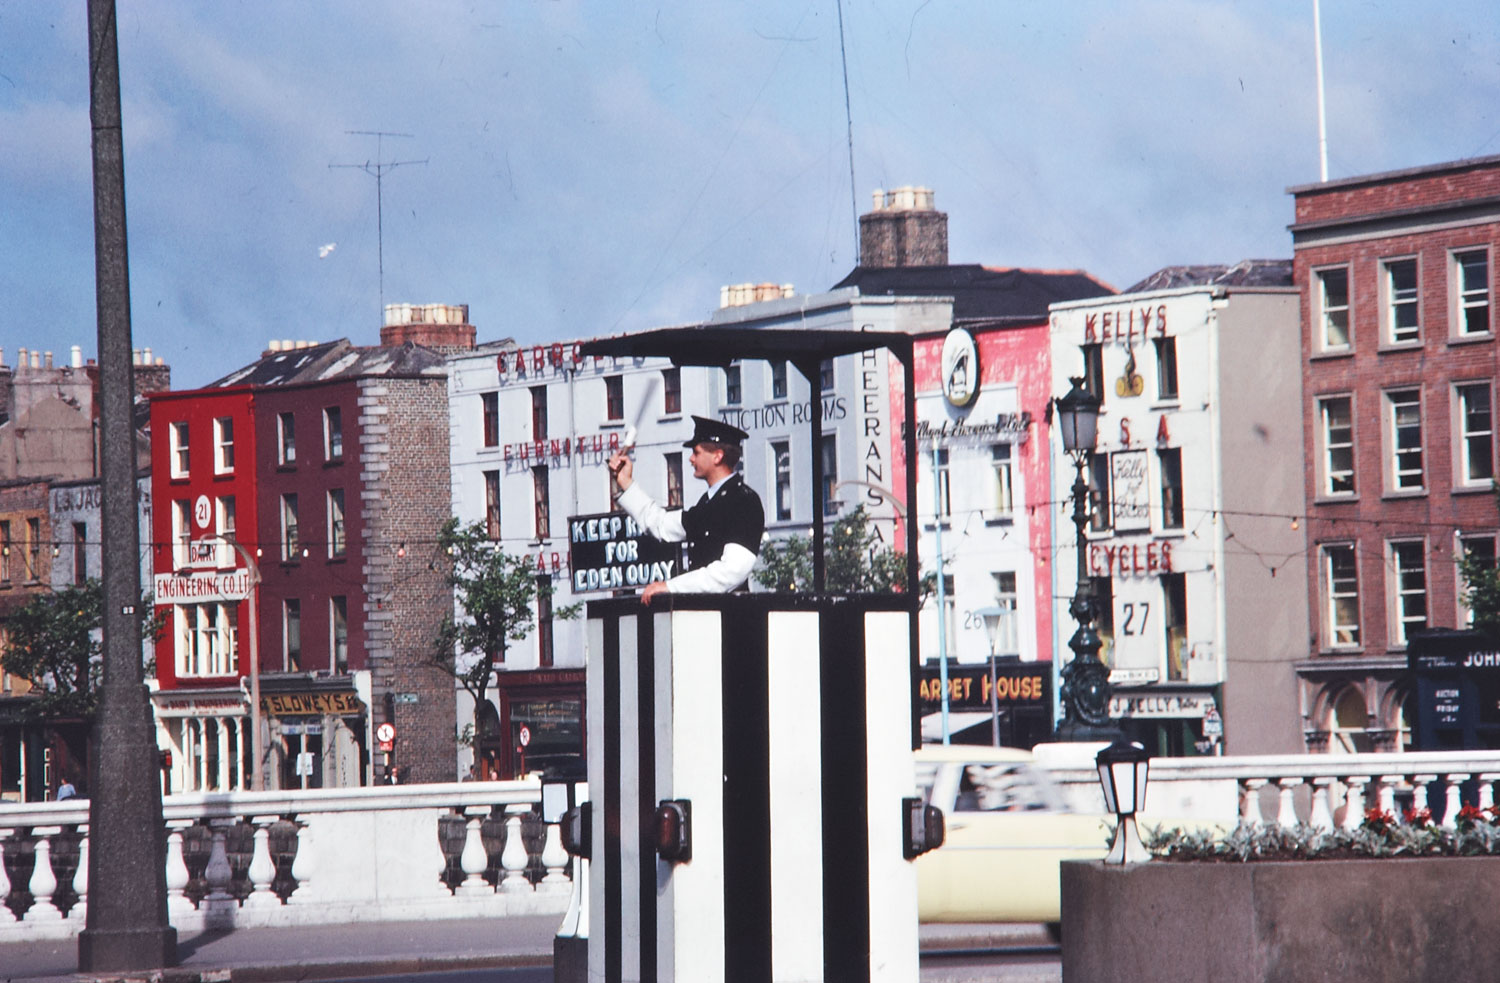 Ireland 1960s, Garda directing traffic, O'Connell Bridge, Dublin This shot gives a good view of the varied businesses on Bachelor's Walk in early 1960s Dublin. Date: June 1963